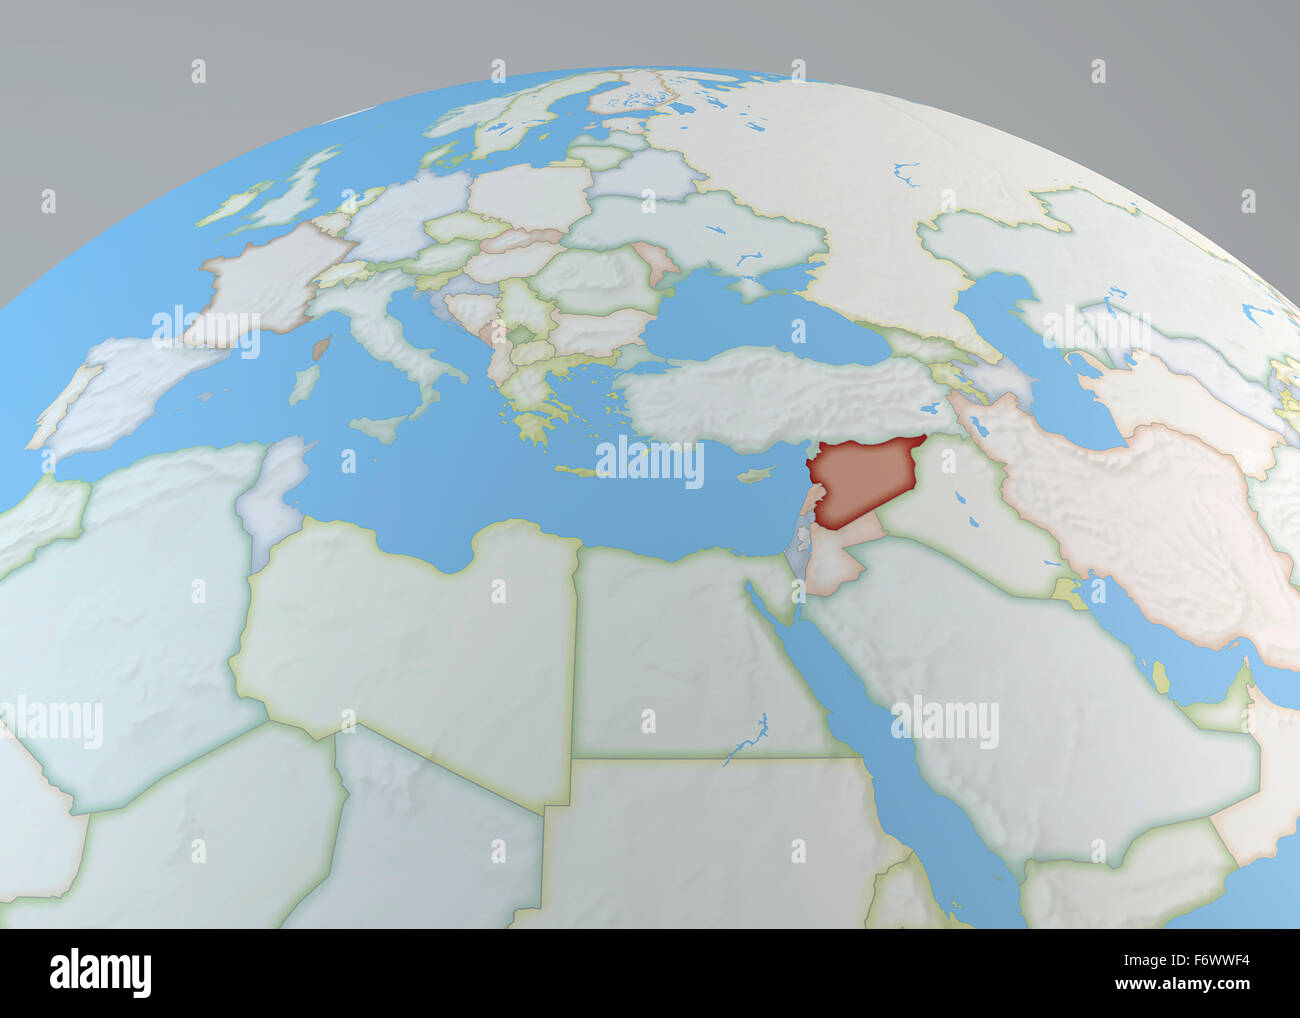 North Africa World Map.World Map Of Middle East With Syria Highlighted North Africa And